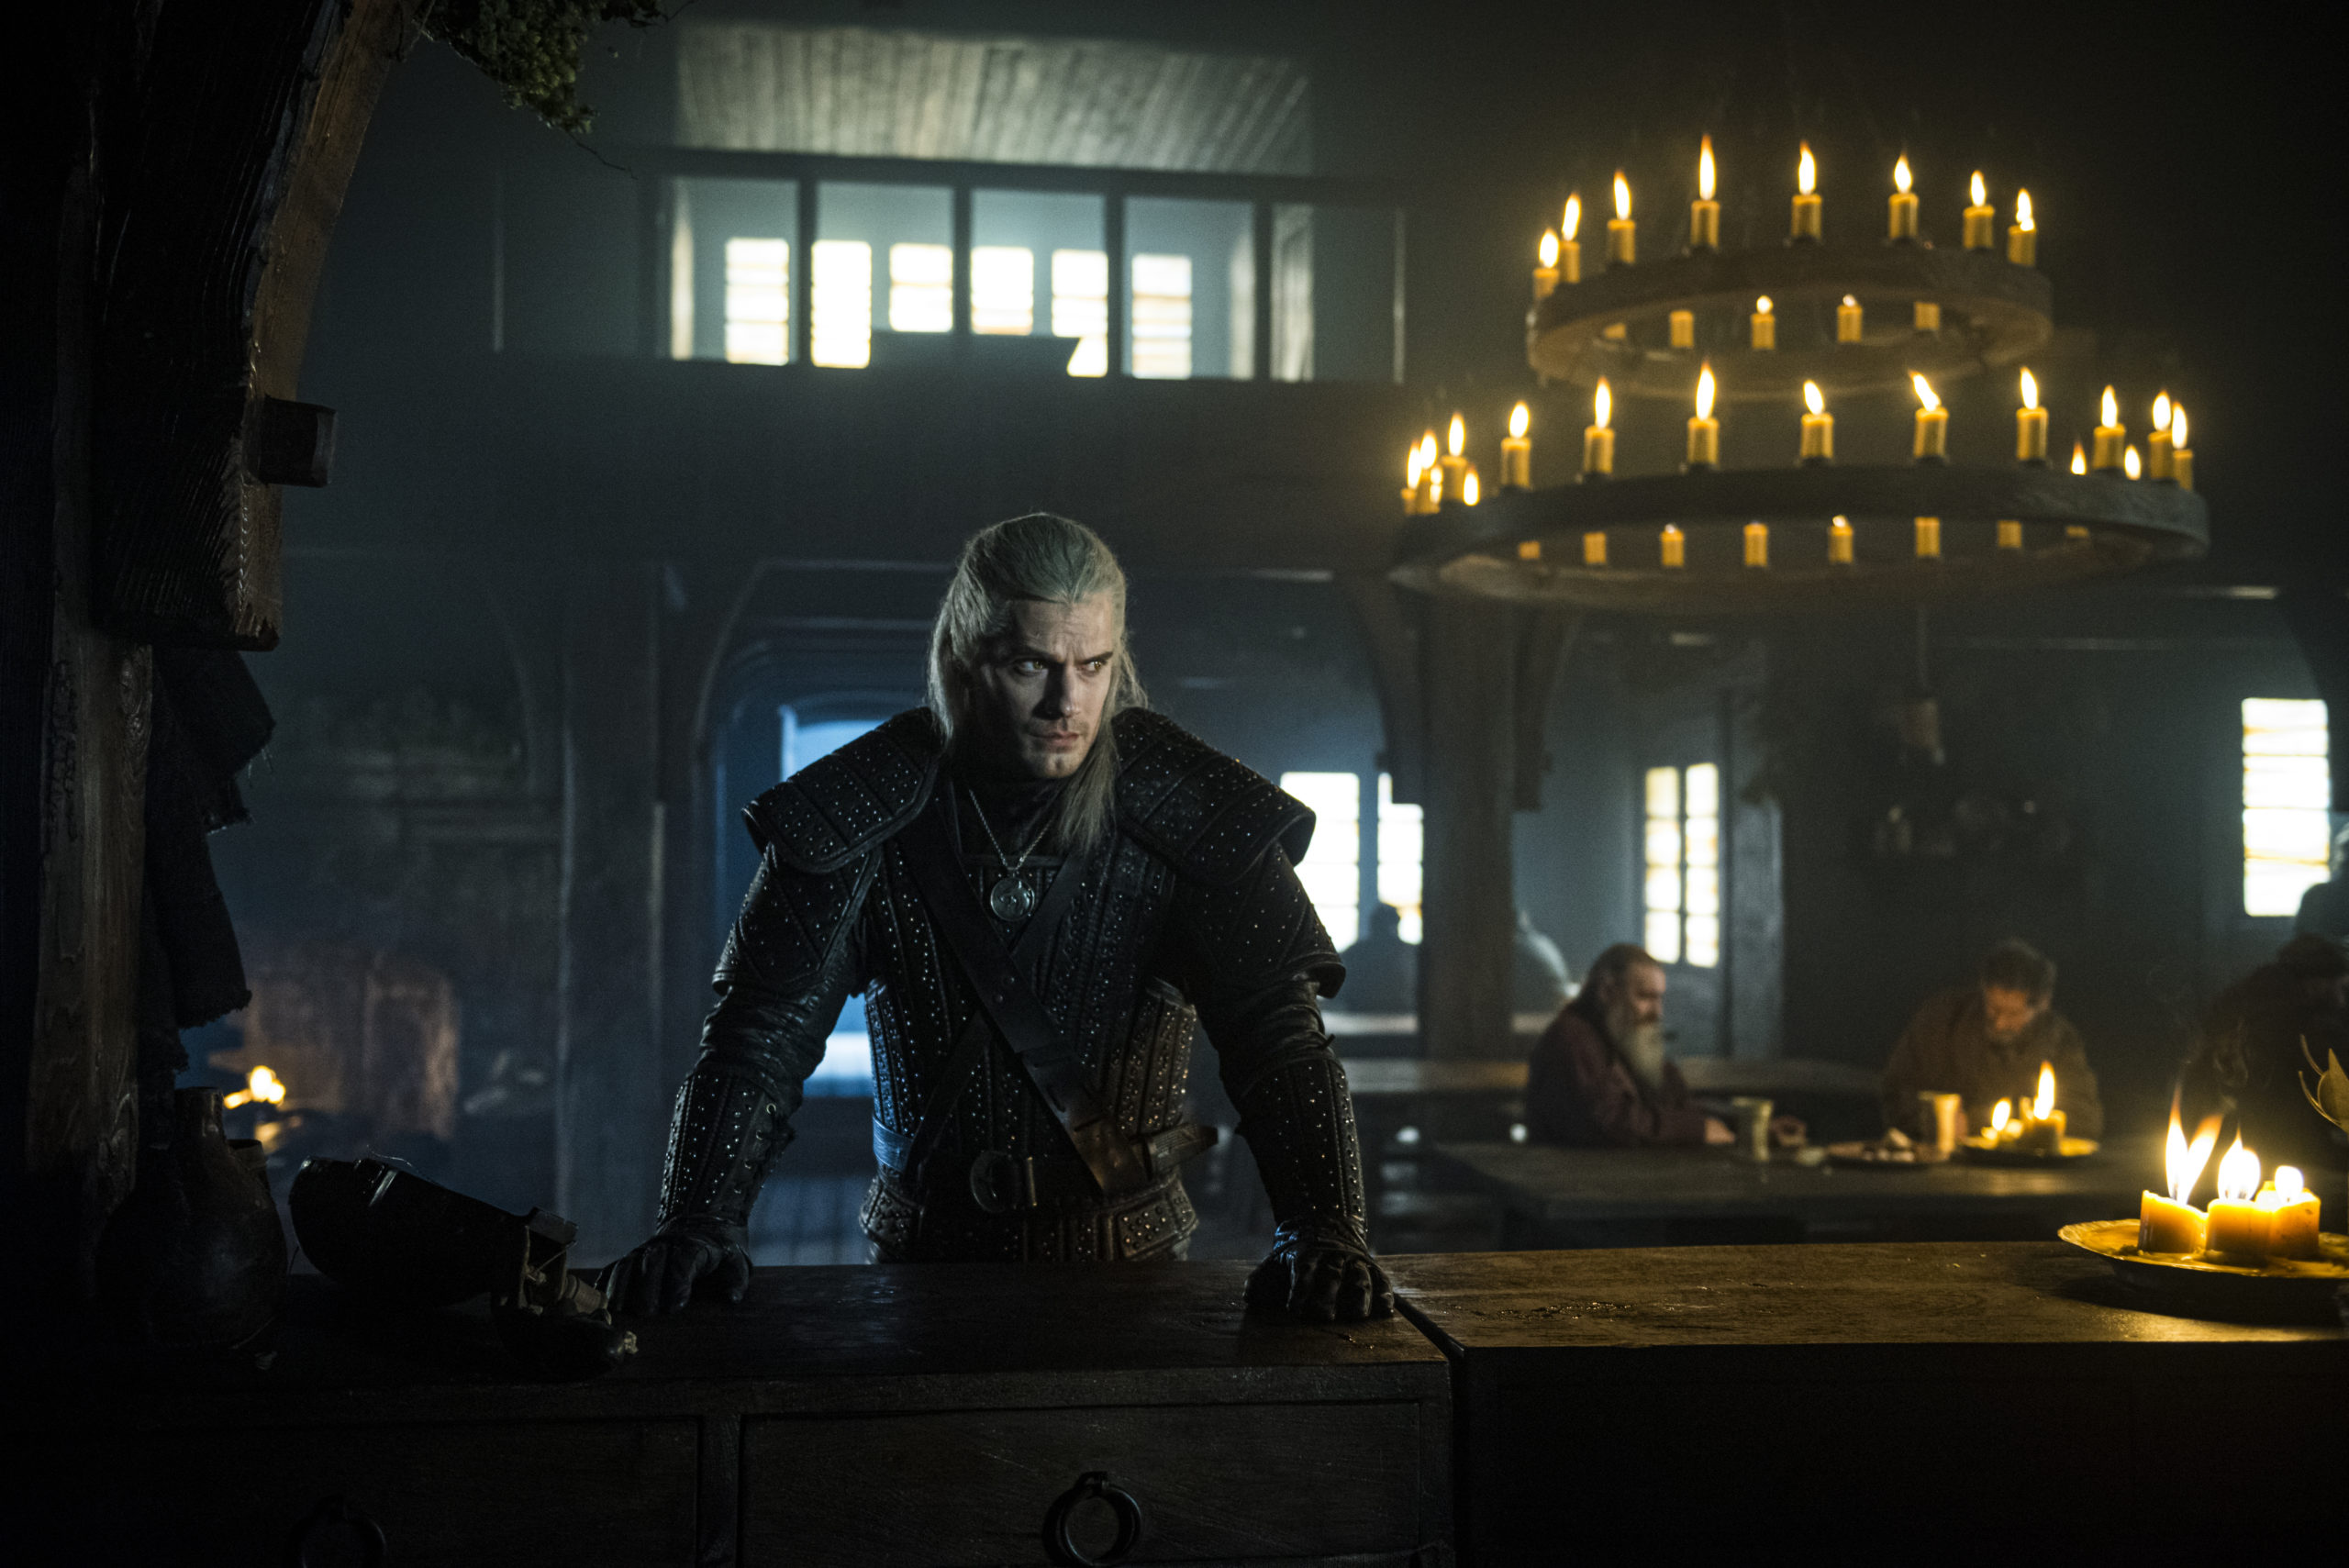 The Witcher season 2: release date, plot, cast, trailer and everything else